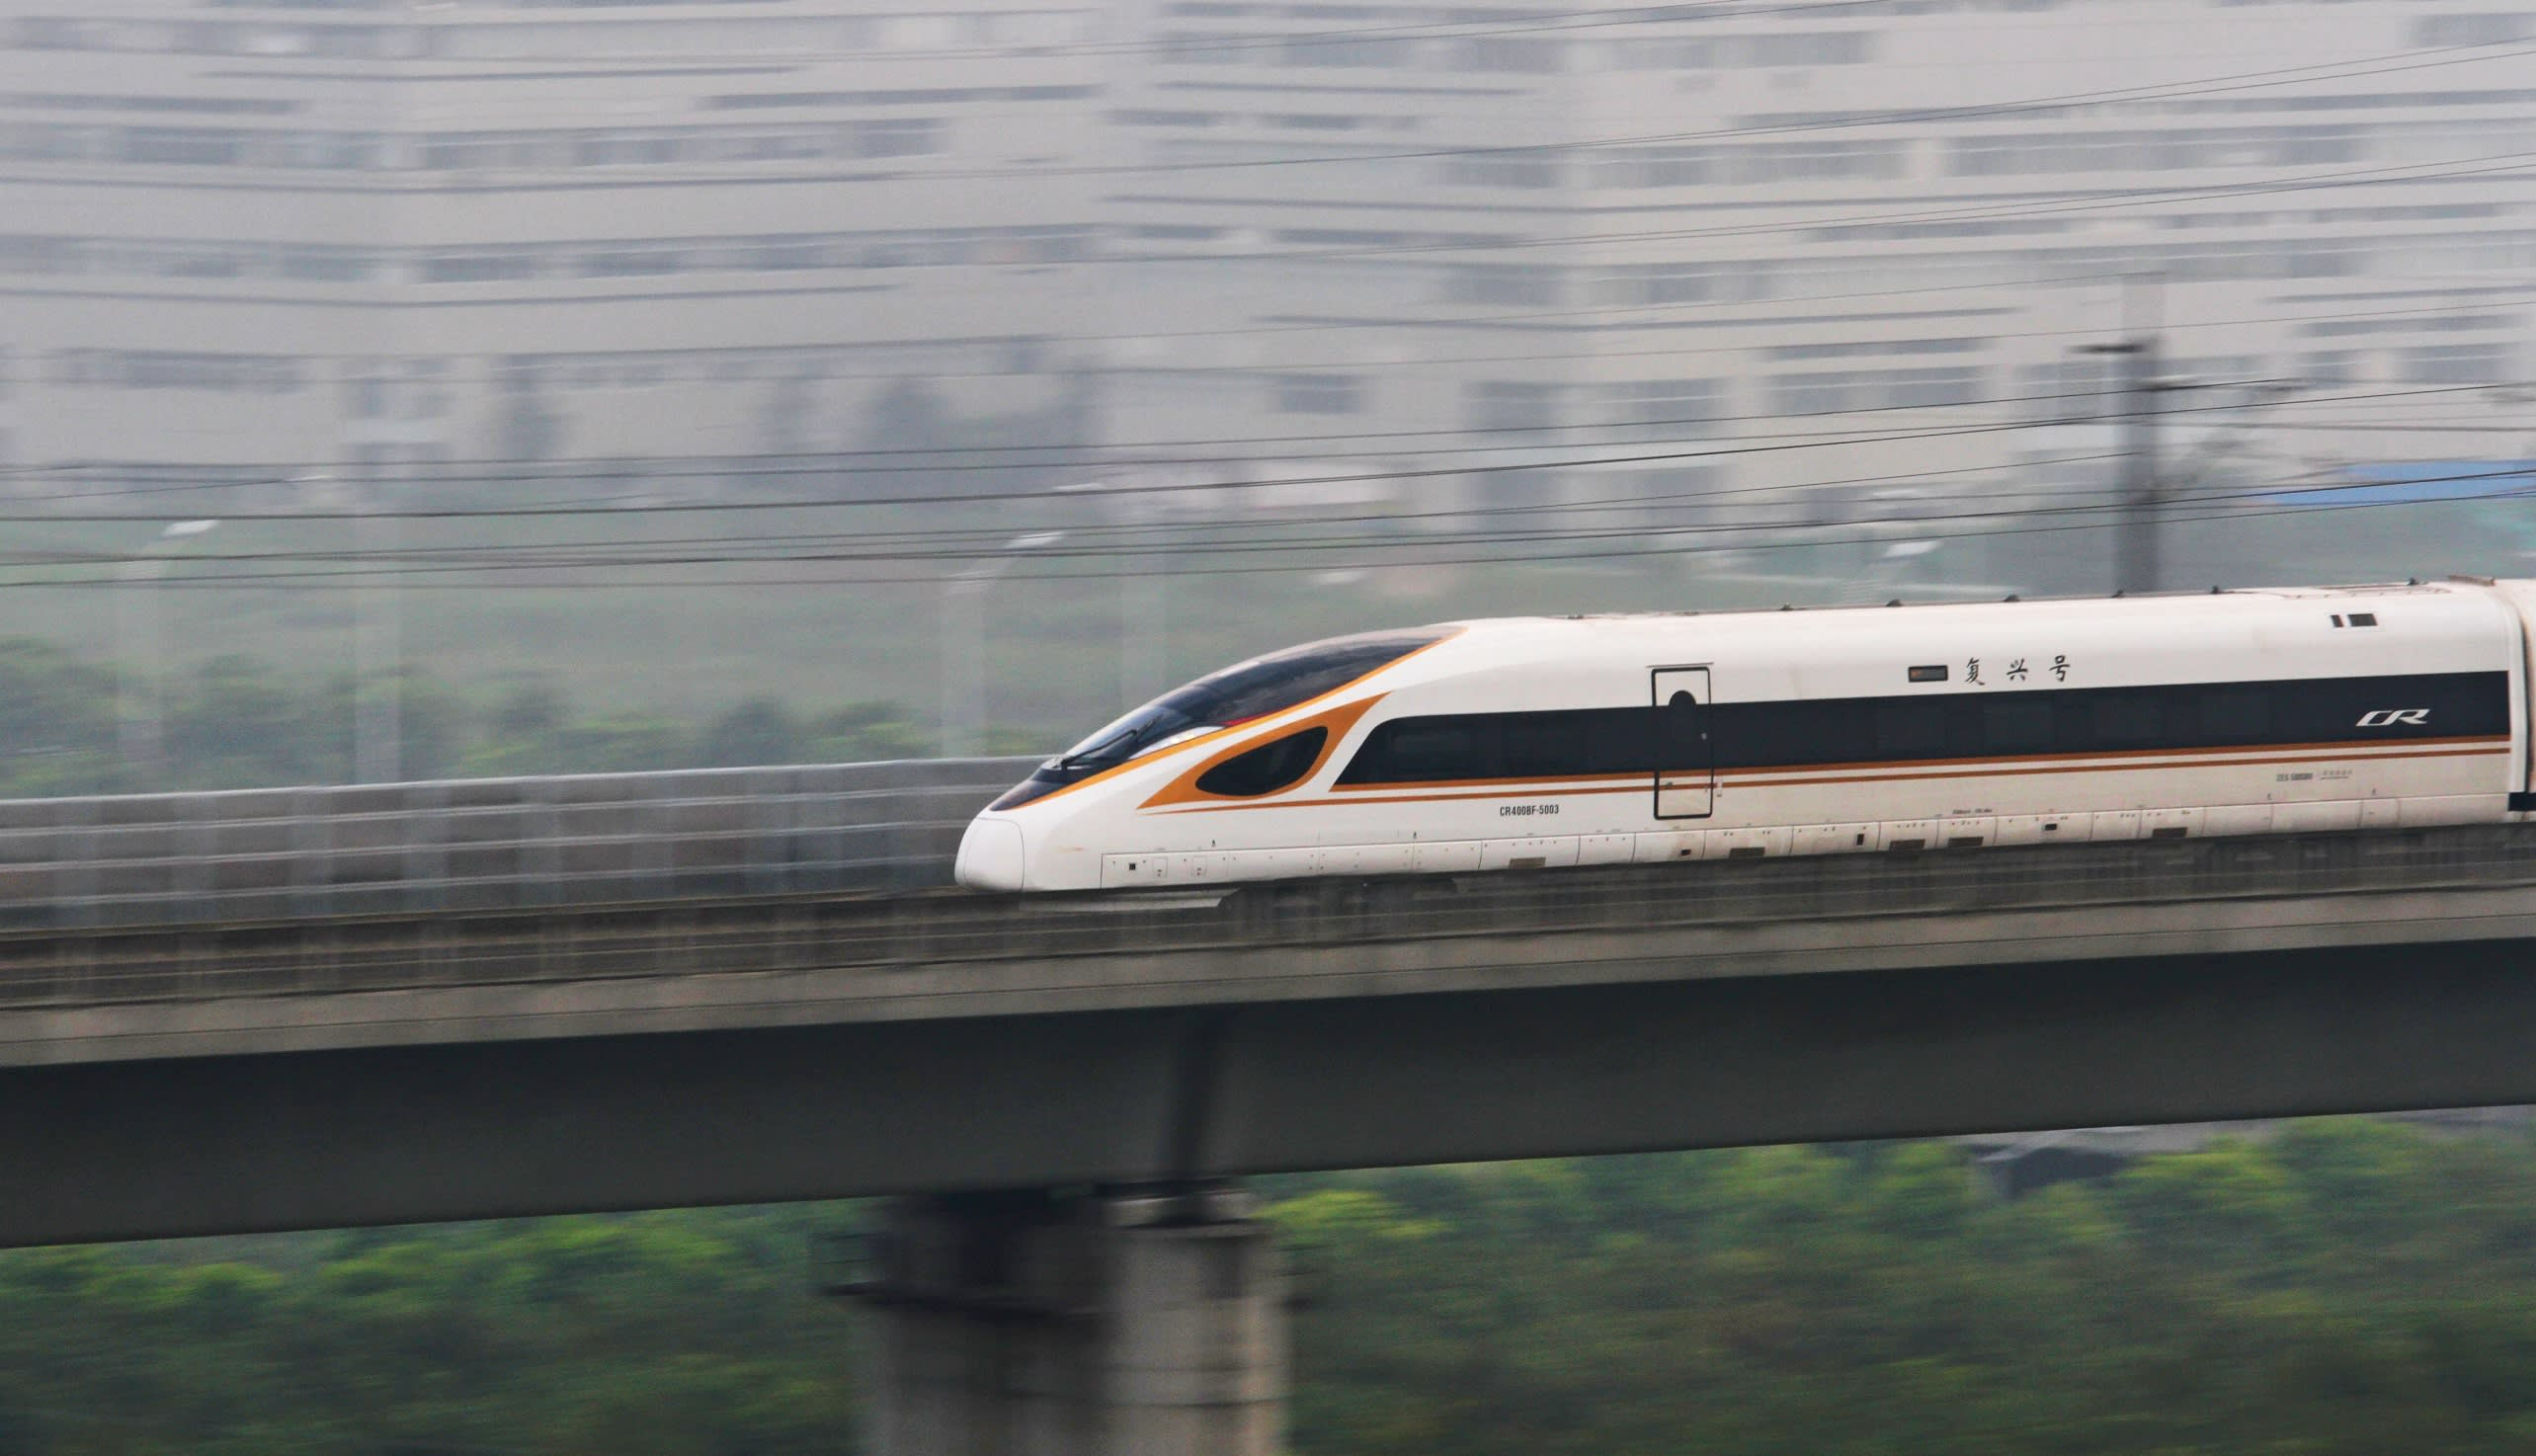 China pays a high price for world's fastest train - Nikkei